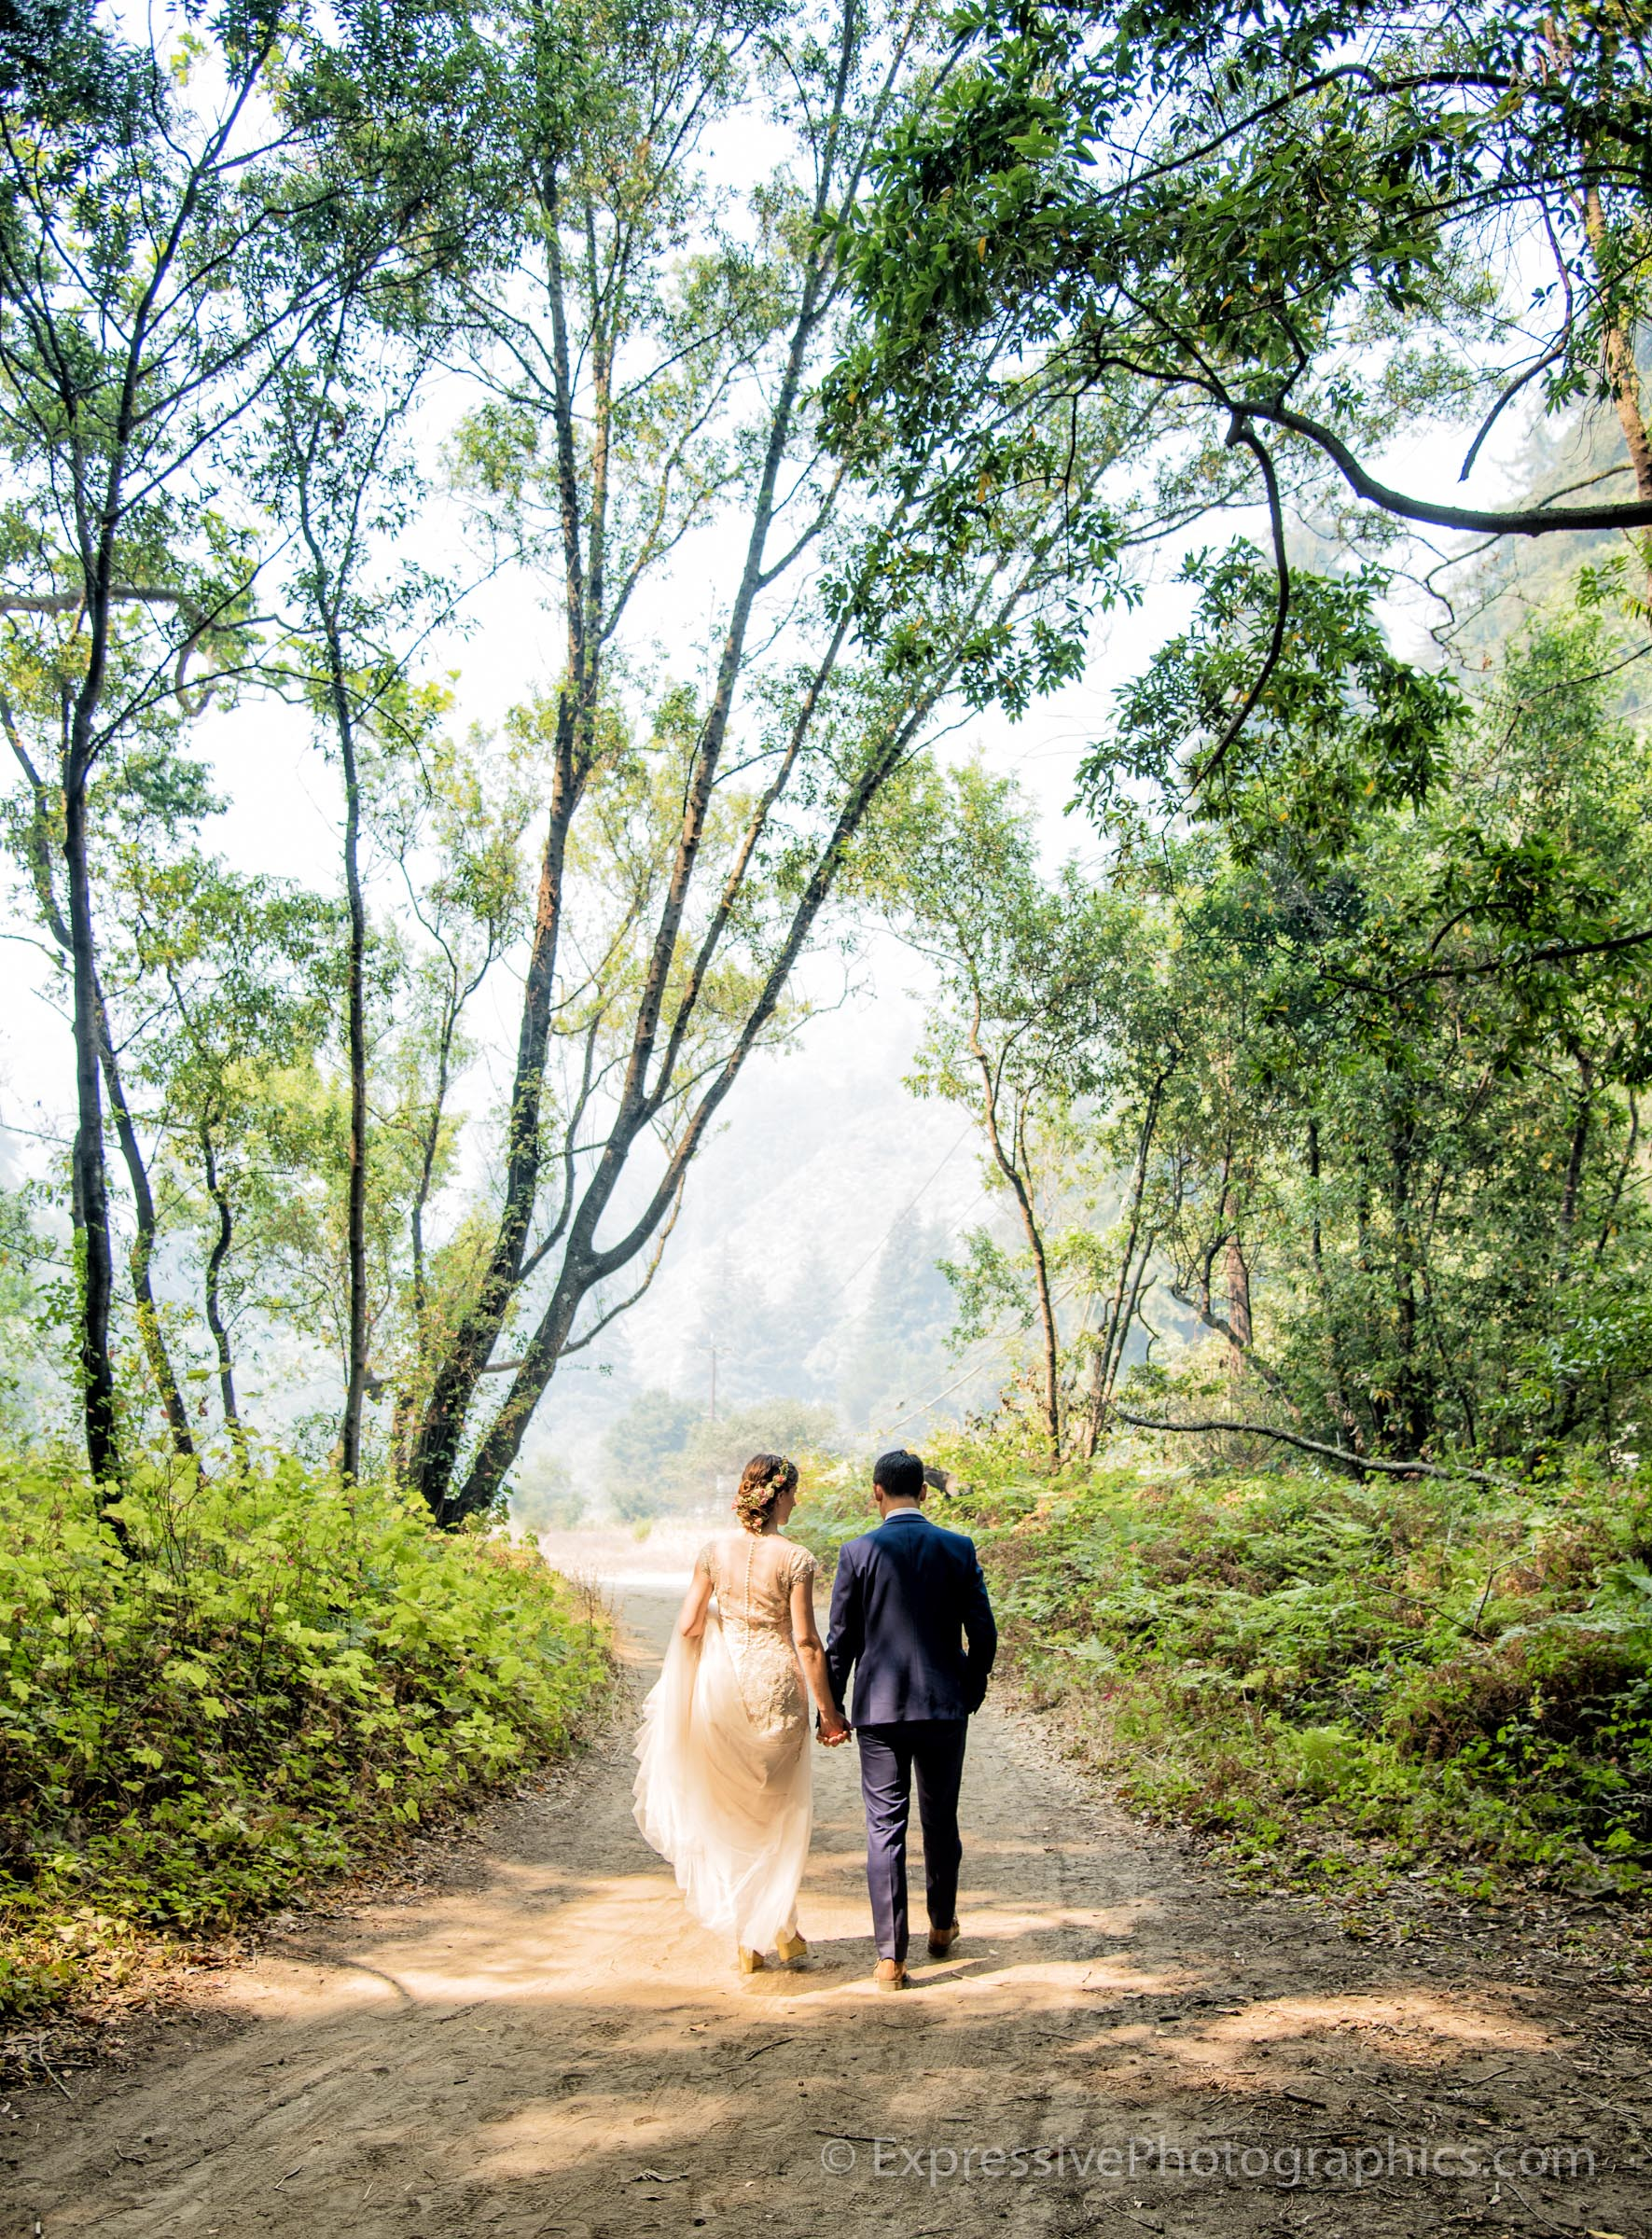 Expressive-Photographics-wedding-couple-walking-20160723_0321_R.jpg